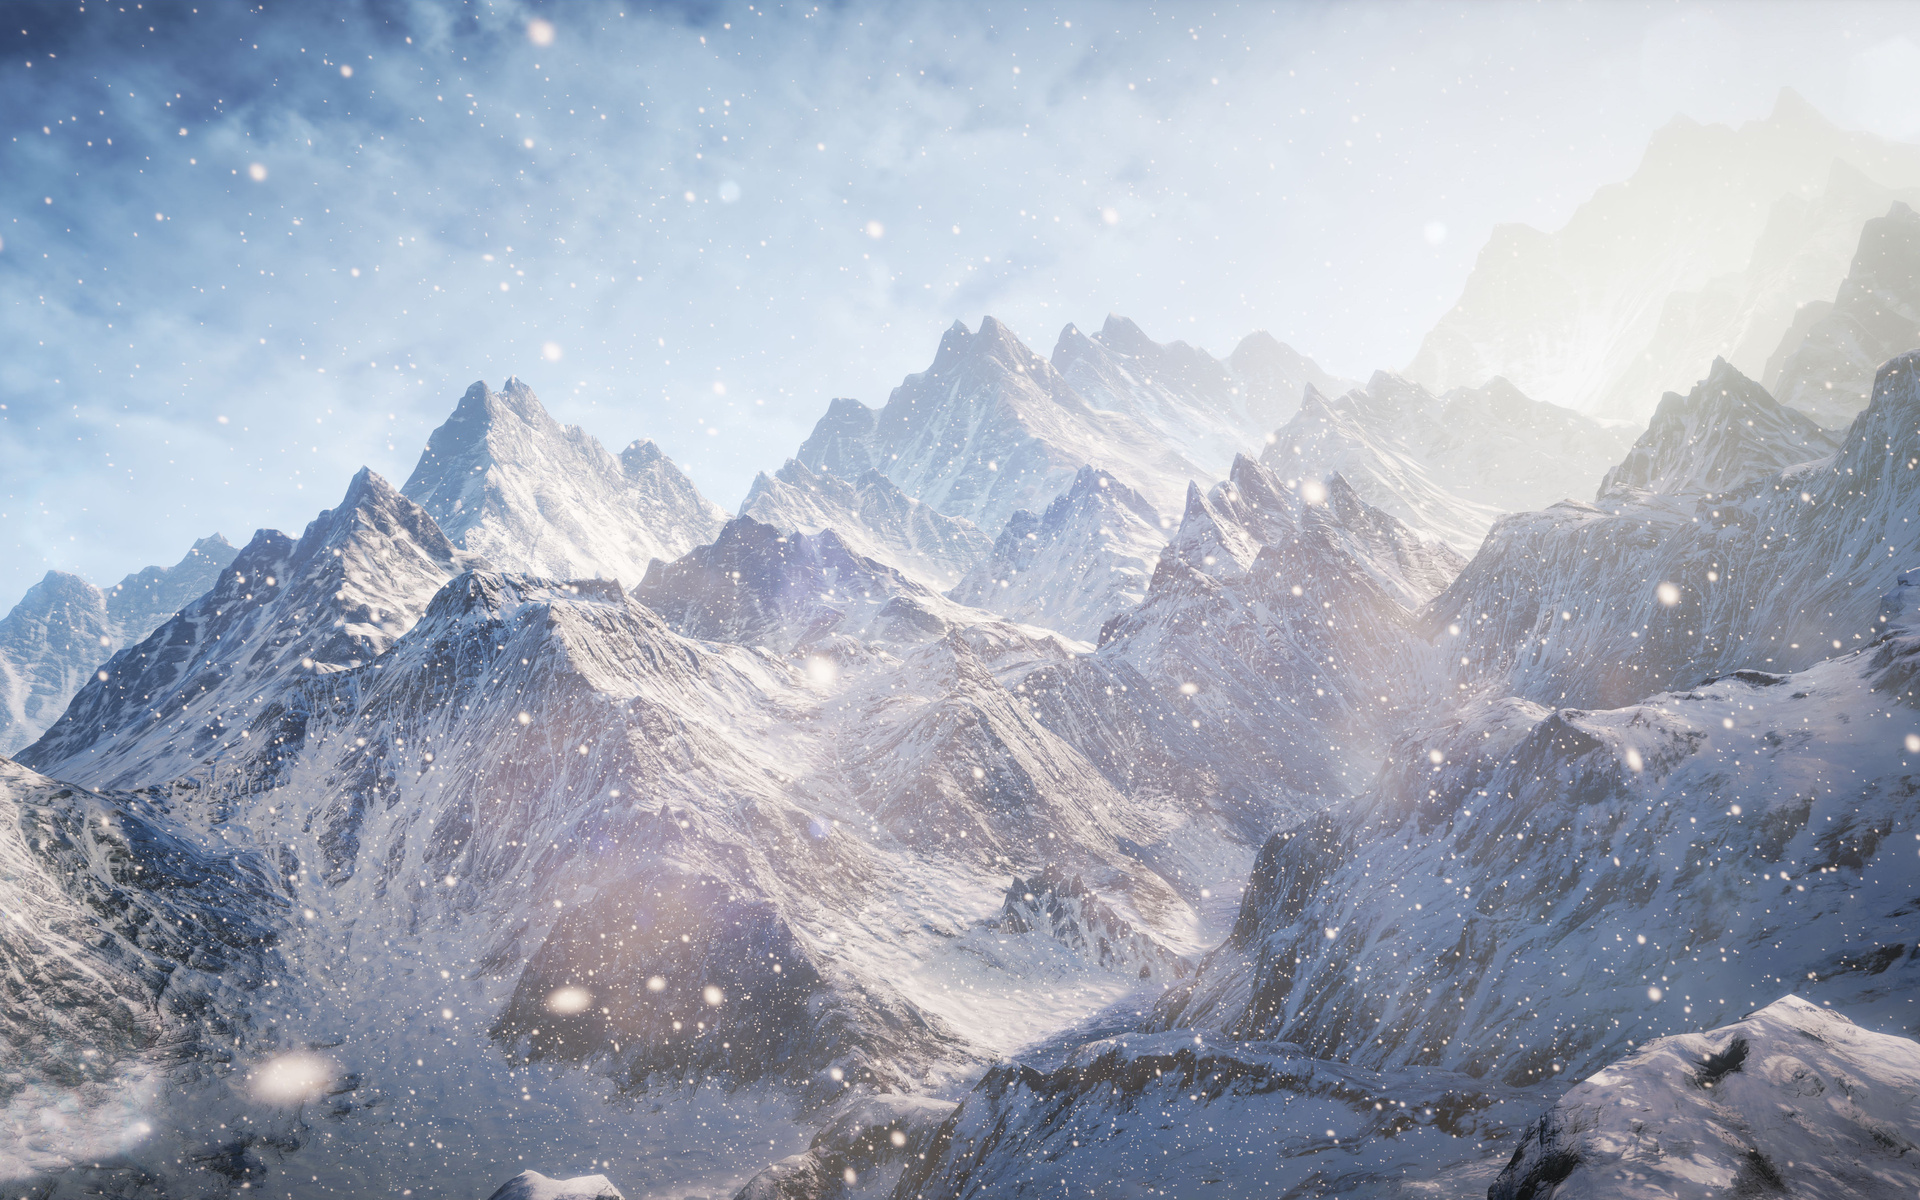 6 Unreal Engine 4 HD Wallpapers | Background Images ...